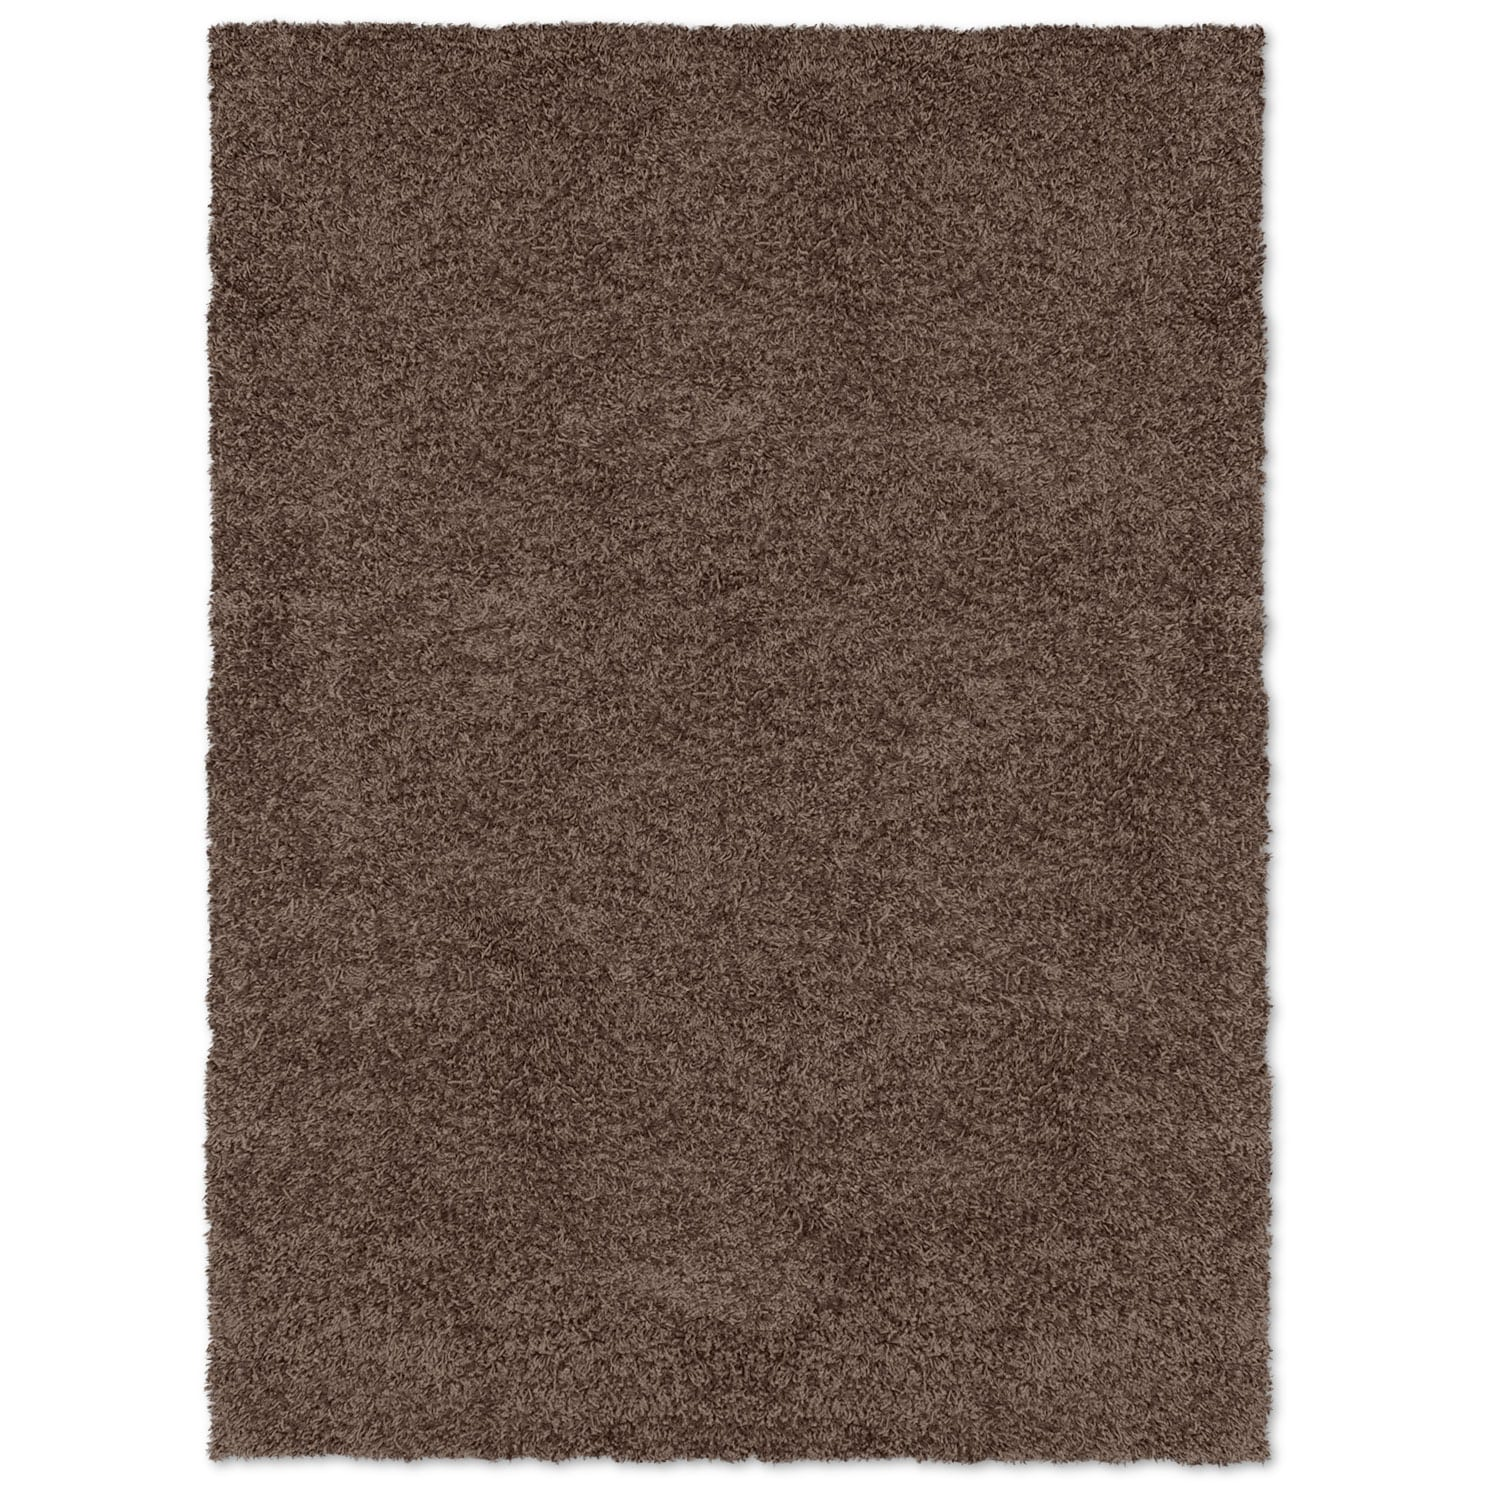 Rugs - Comfort Chocolate Shag Area Rug (8' x 10')